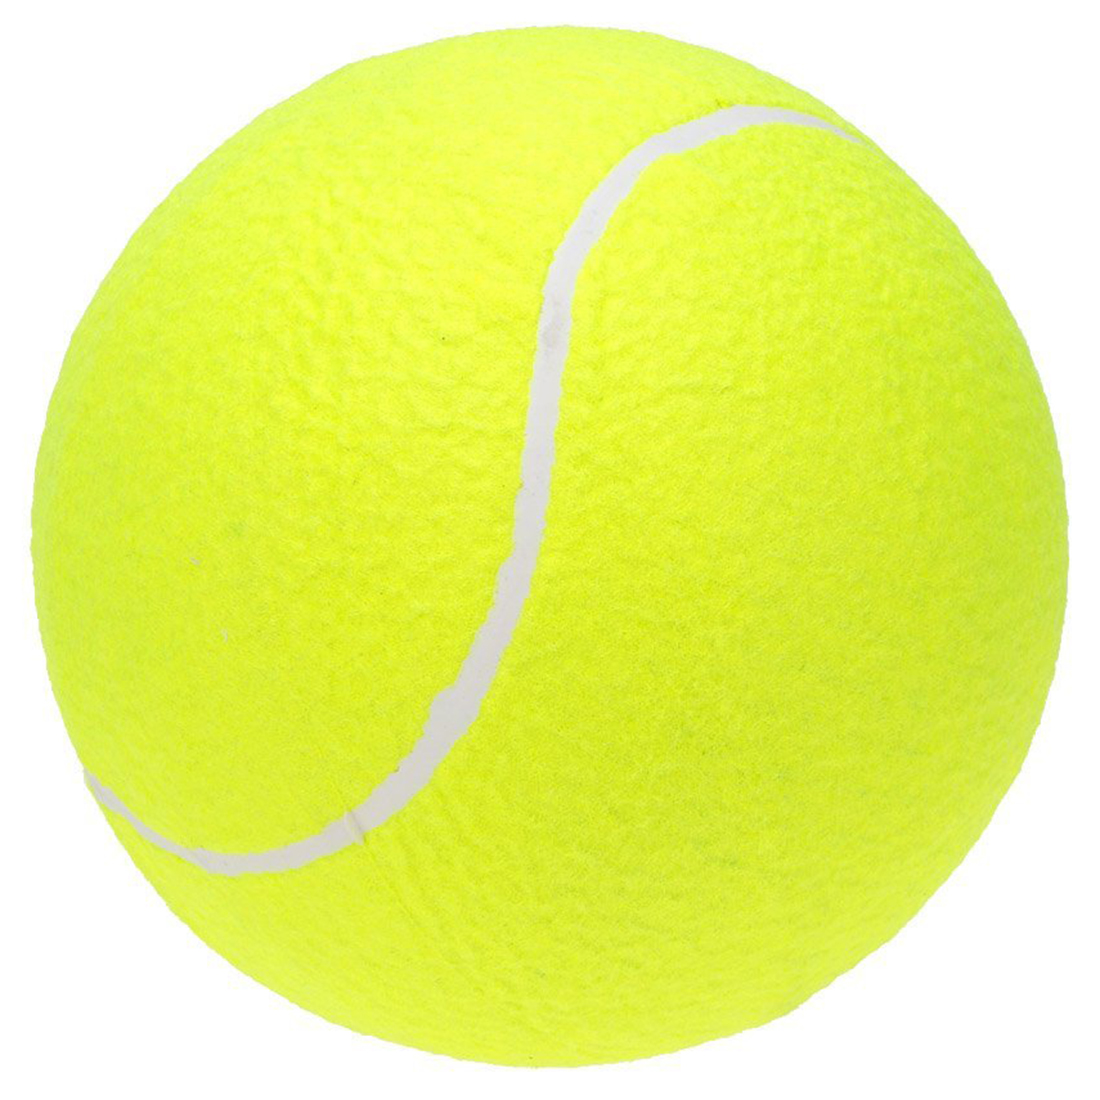 9.5 Oversize Giant Tennis Ball for Children Adult Pet Fun